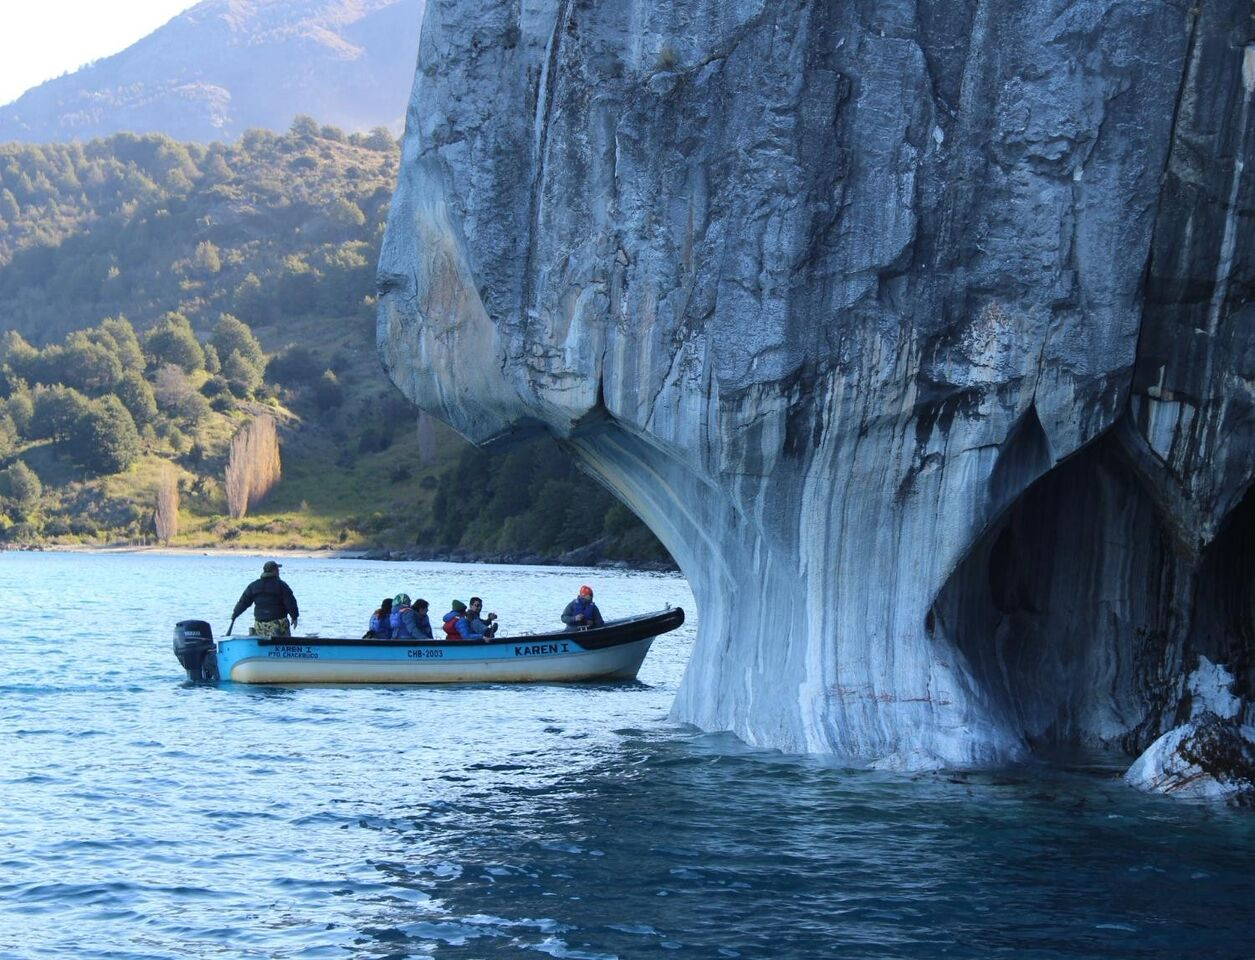 wp-content/uploads/itineraries/Chile/Aysen 2 Marble Caves.jpg